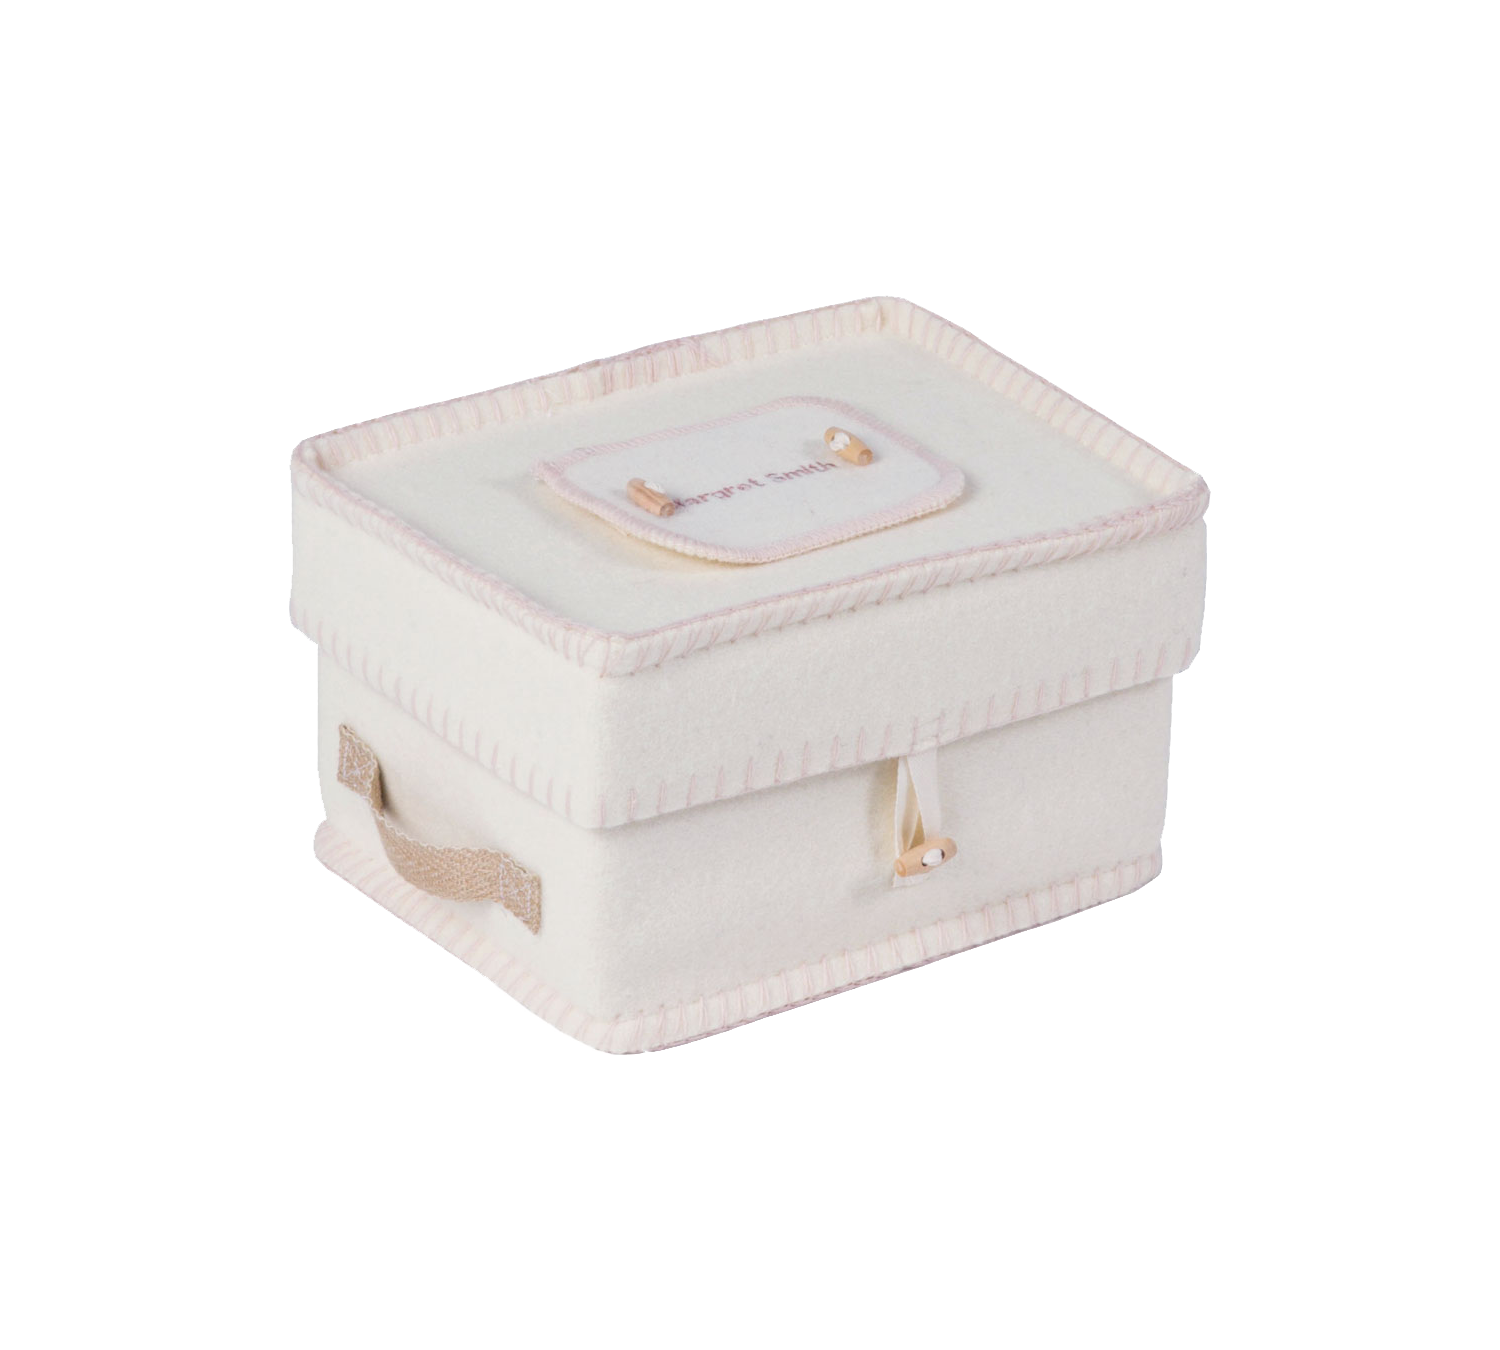 Natural White Woolen Casket